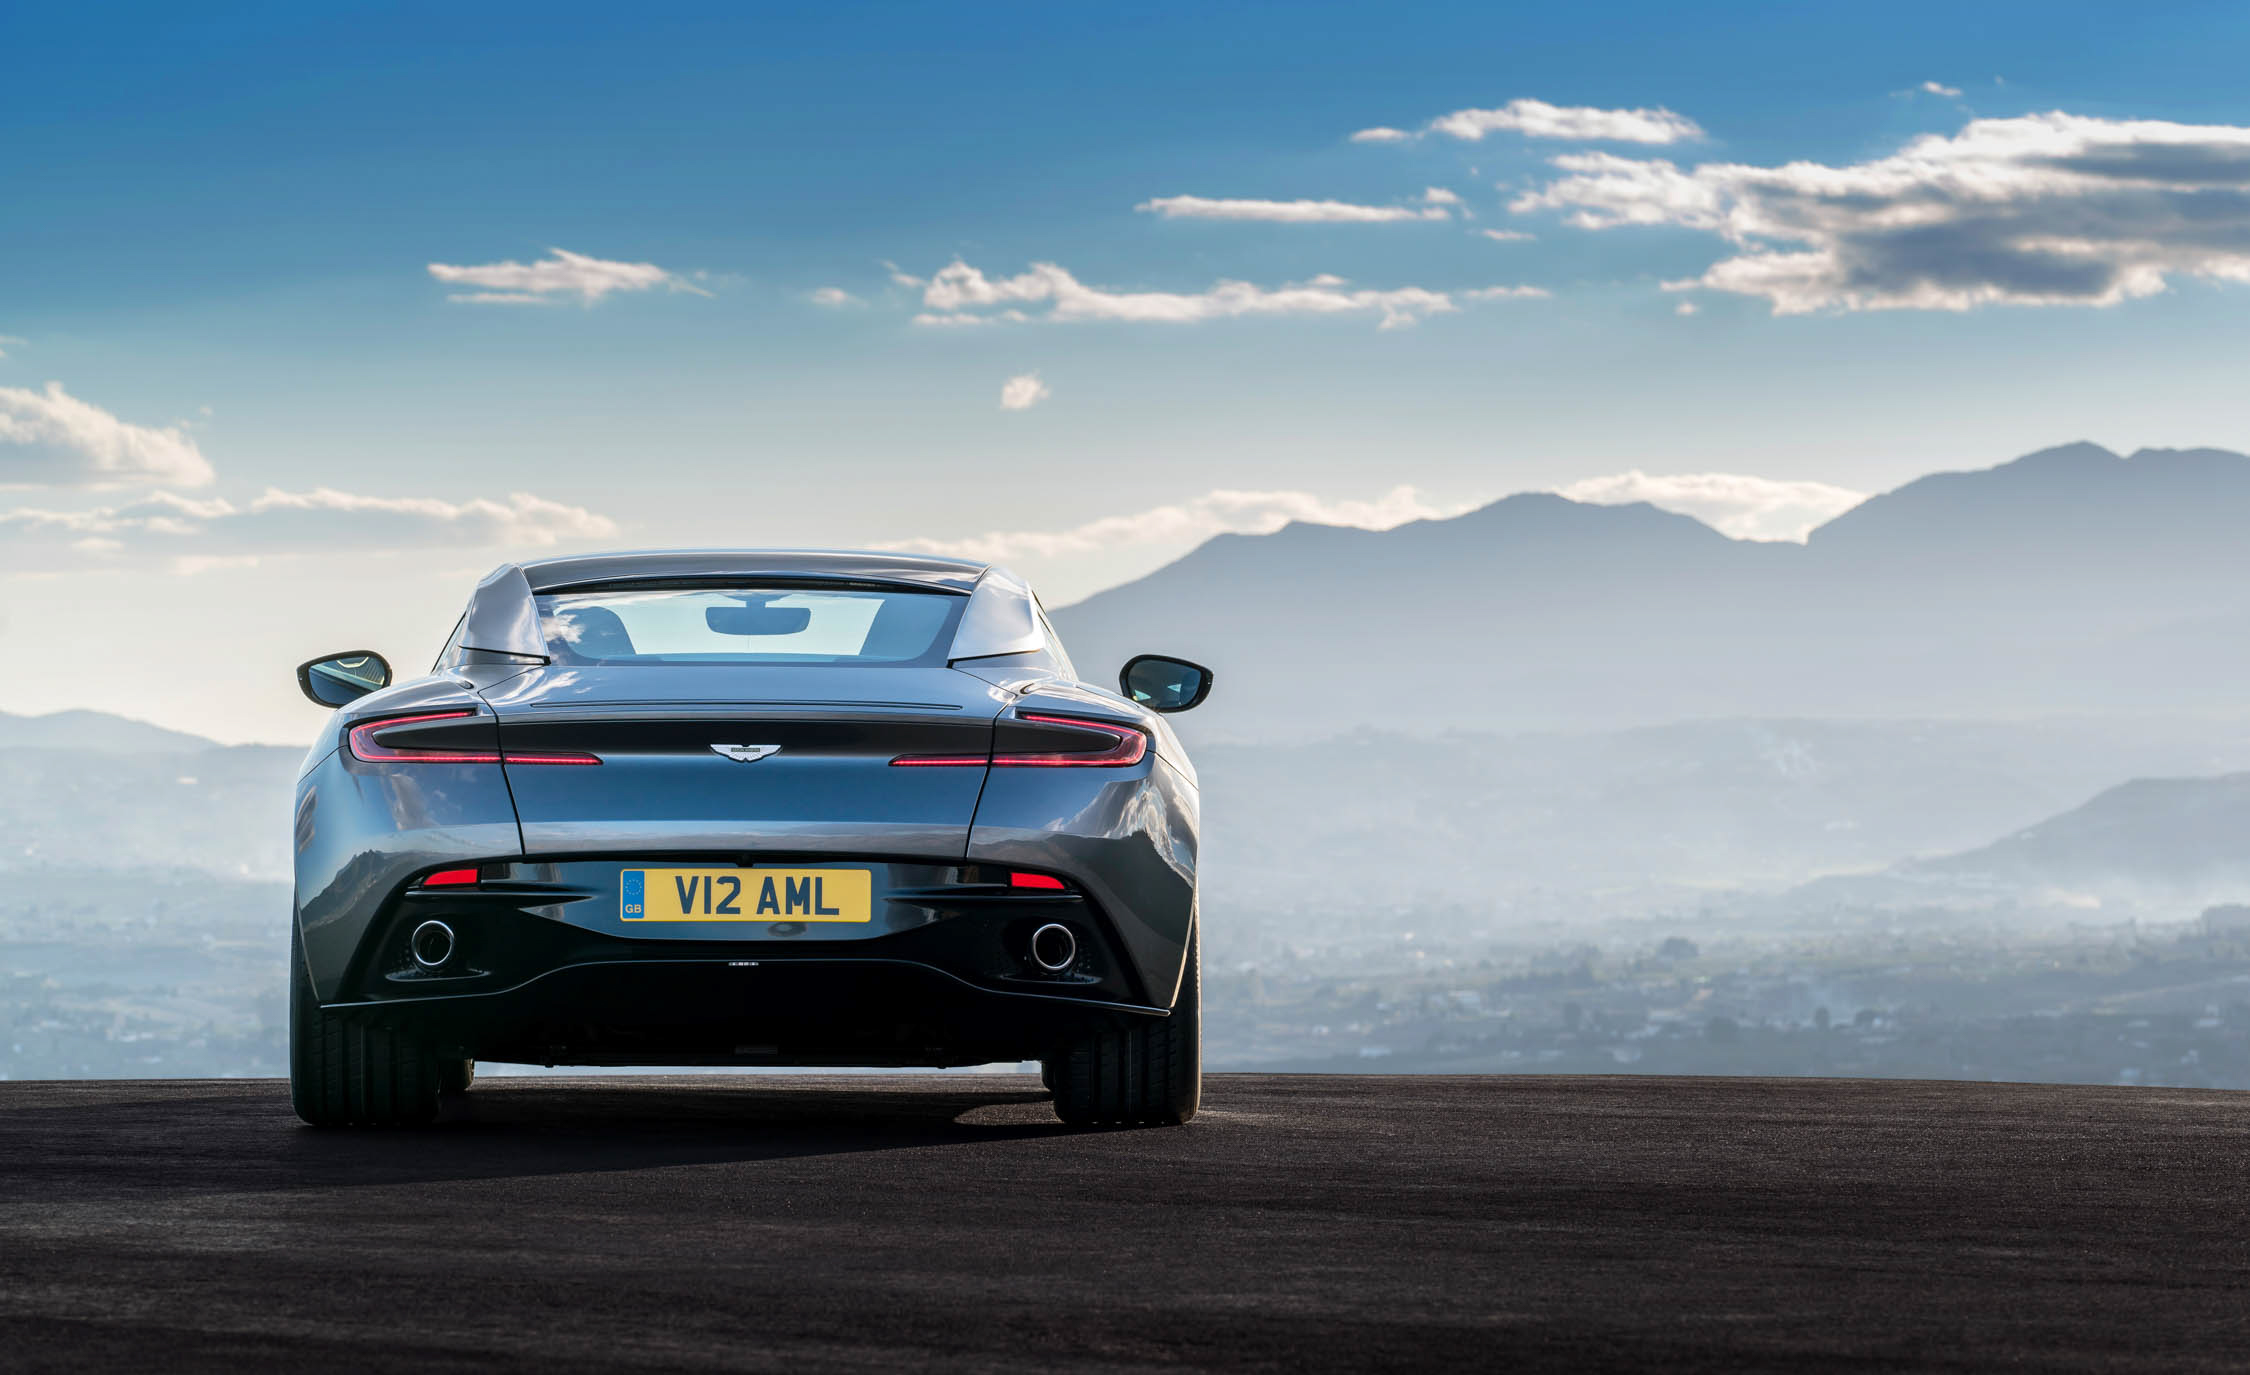 2017 Aston Martin Db11 Exterior Rear View (View 18 of 22)